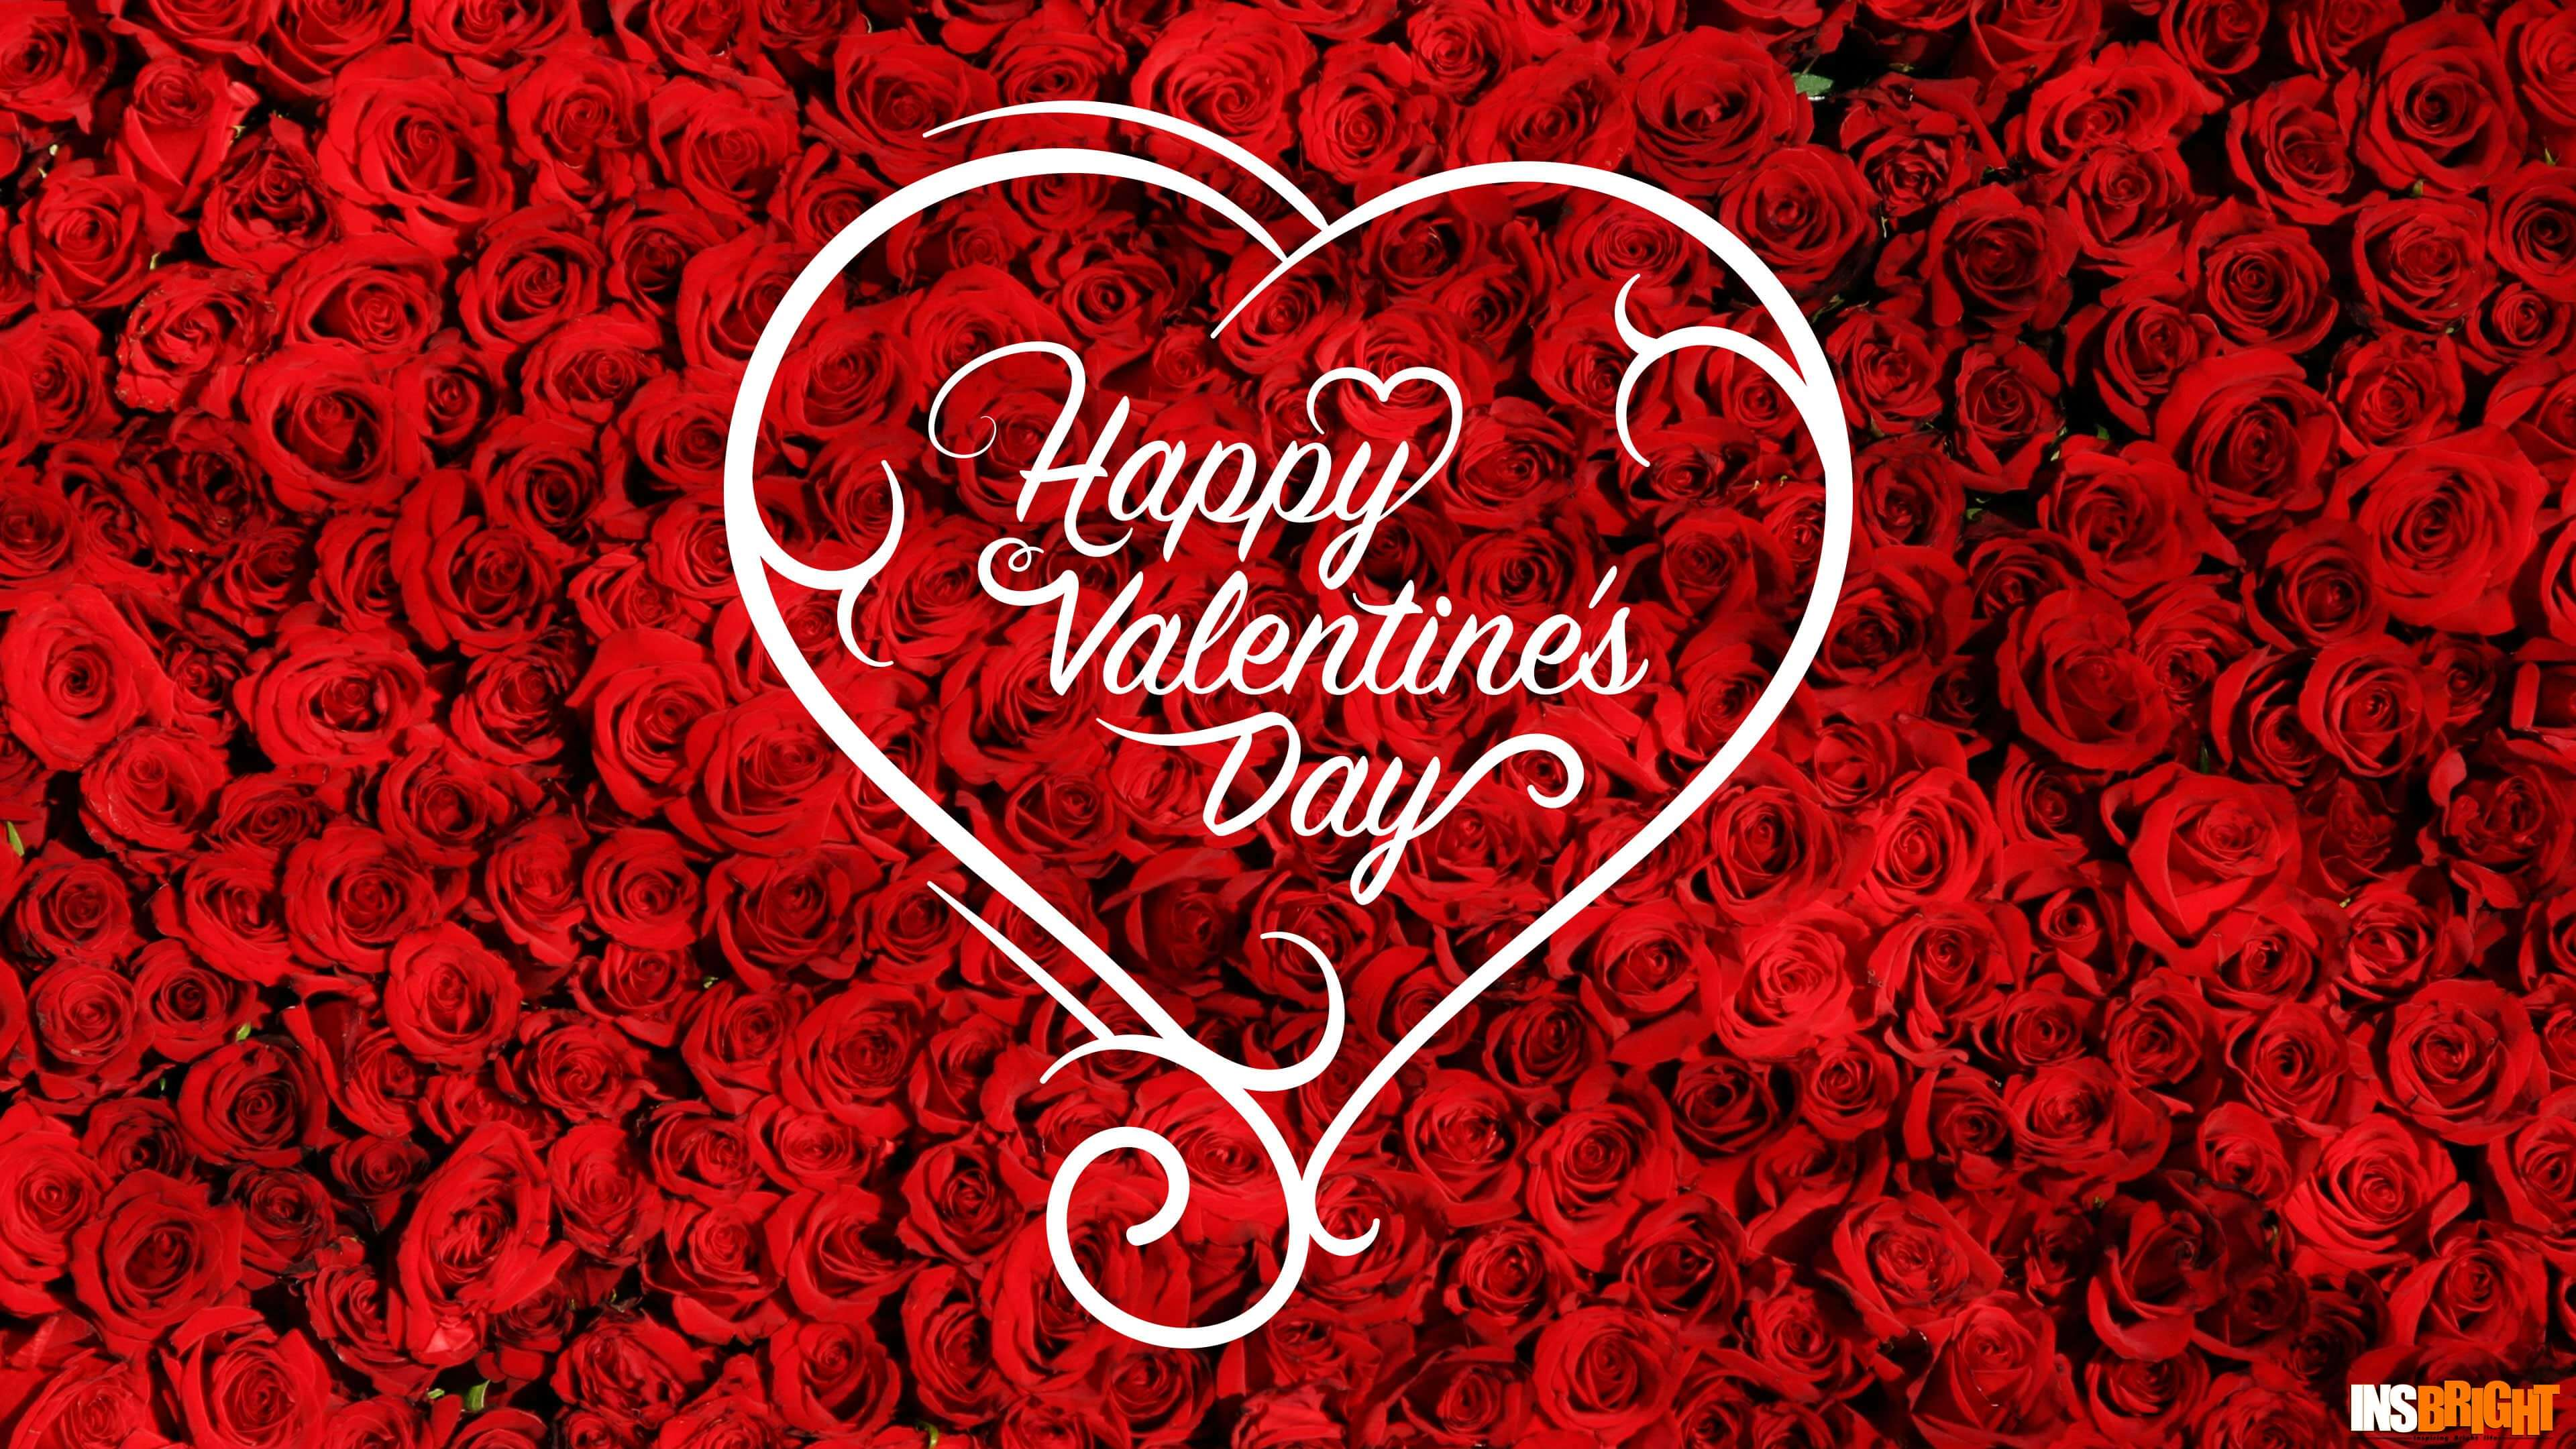 Free Download Hd Valentine S Day Wallpapers 2017 Happy Valentine